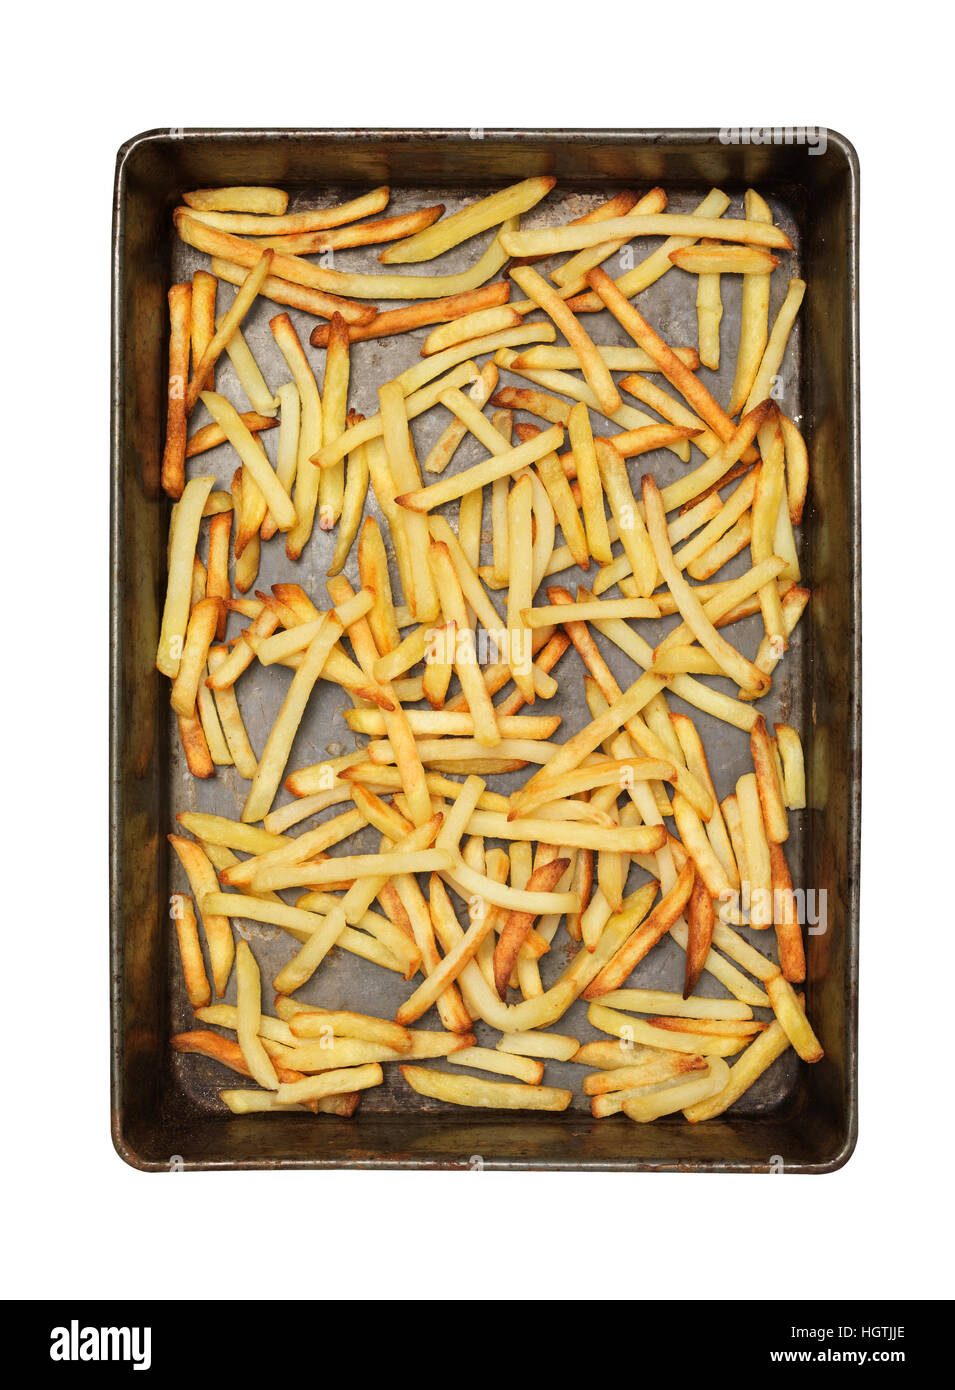 Cooked French Fries - Stock Image